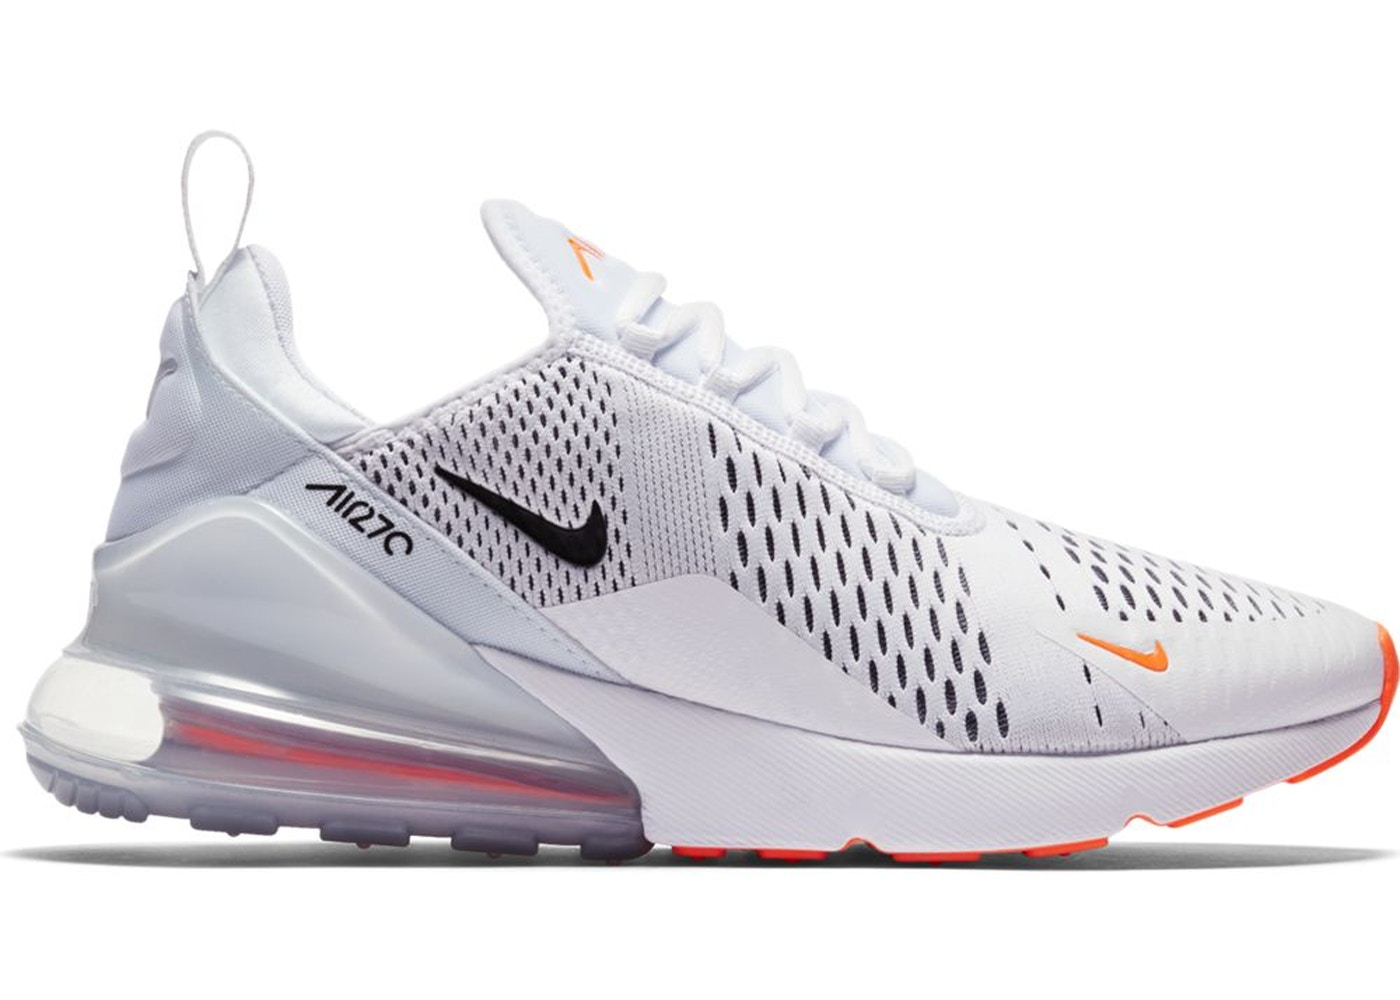 low priced 1ef5b 57ff2 Air Max 270 White Black Total Orange